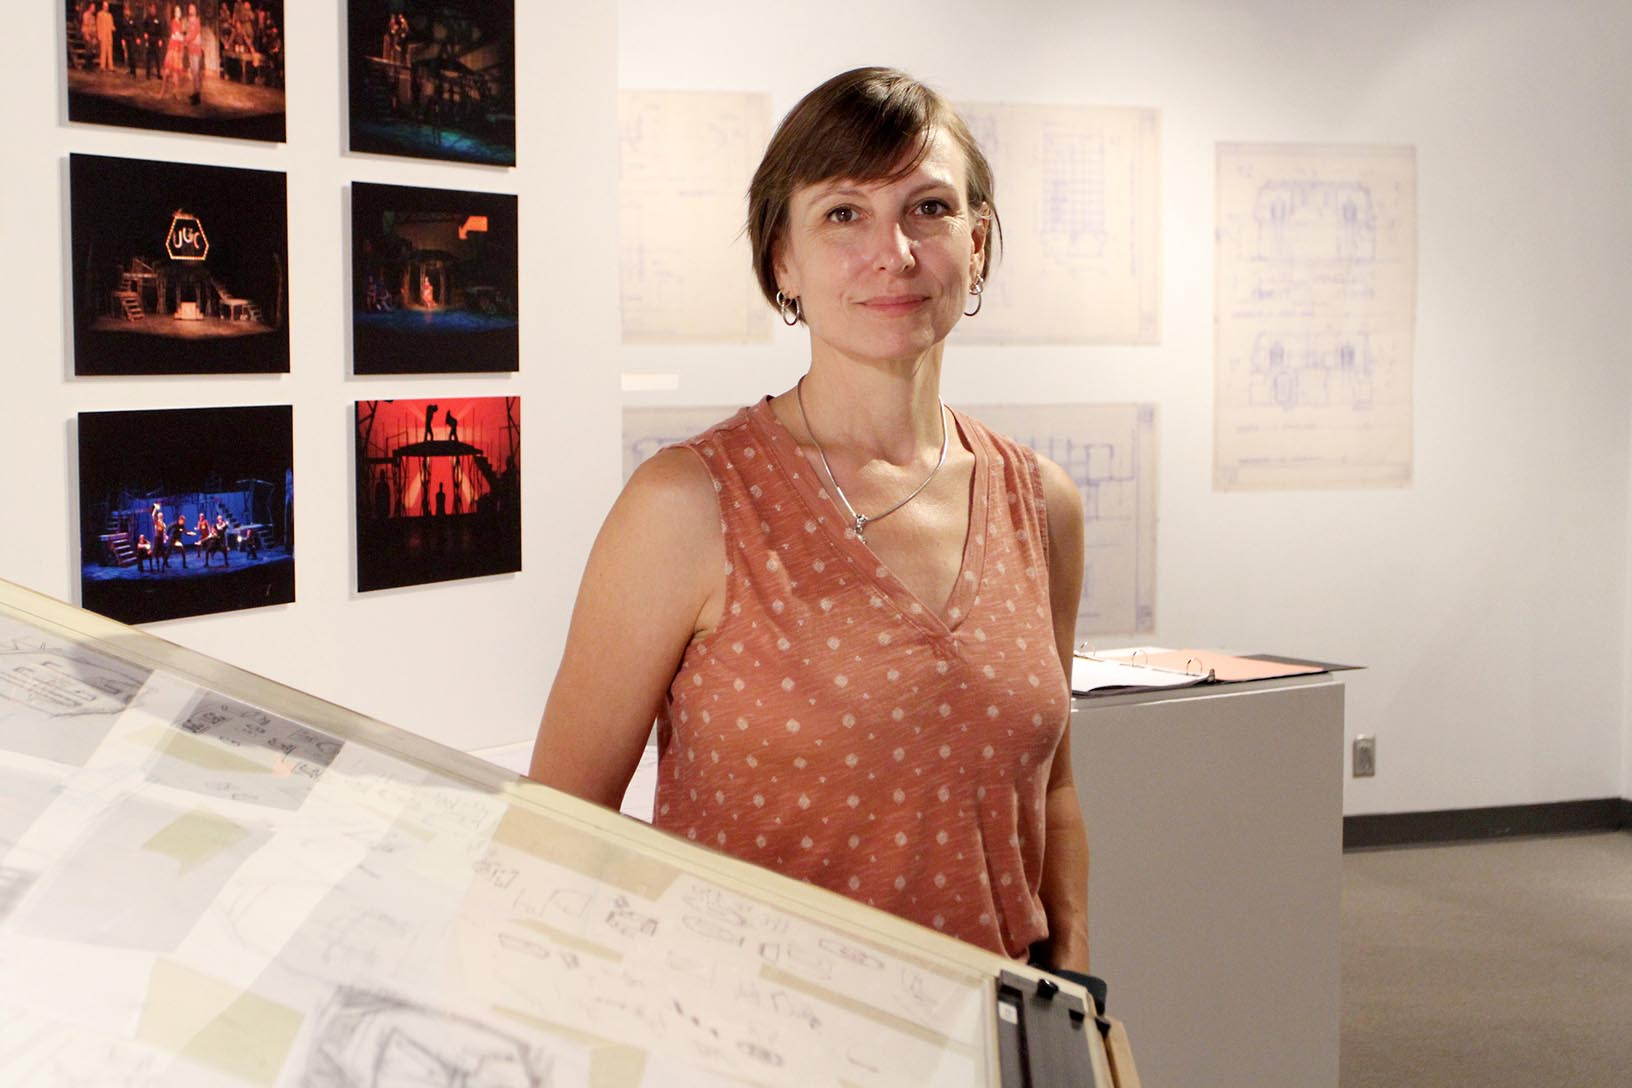 An assistant professor in the interior and product design program, Ahna Packard spent 20 years working as a professional set designer in Hollywood and other locations across the country before joining UNK in 2018.